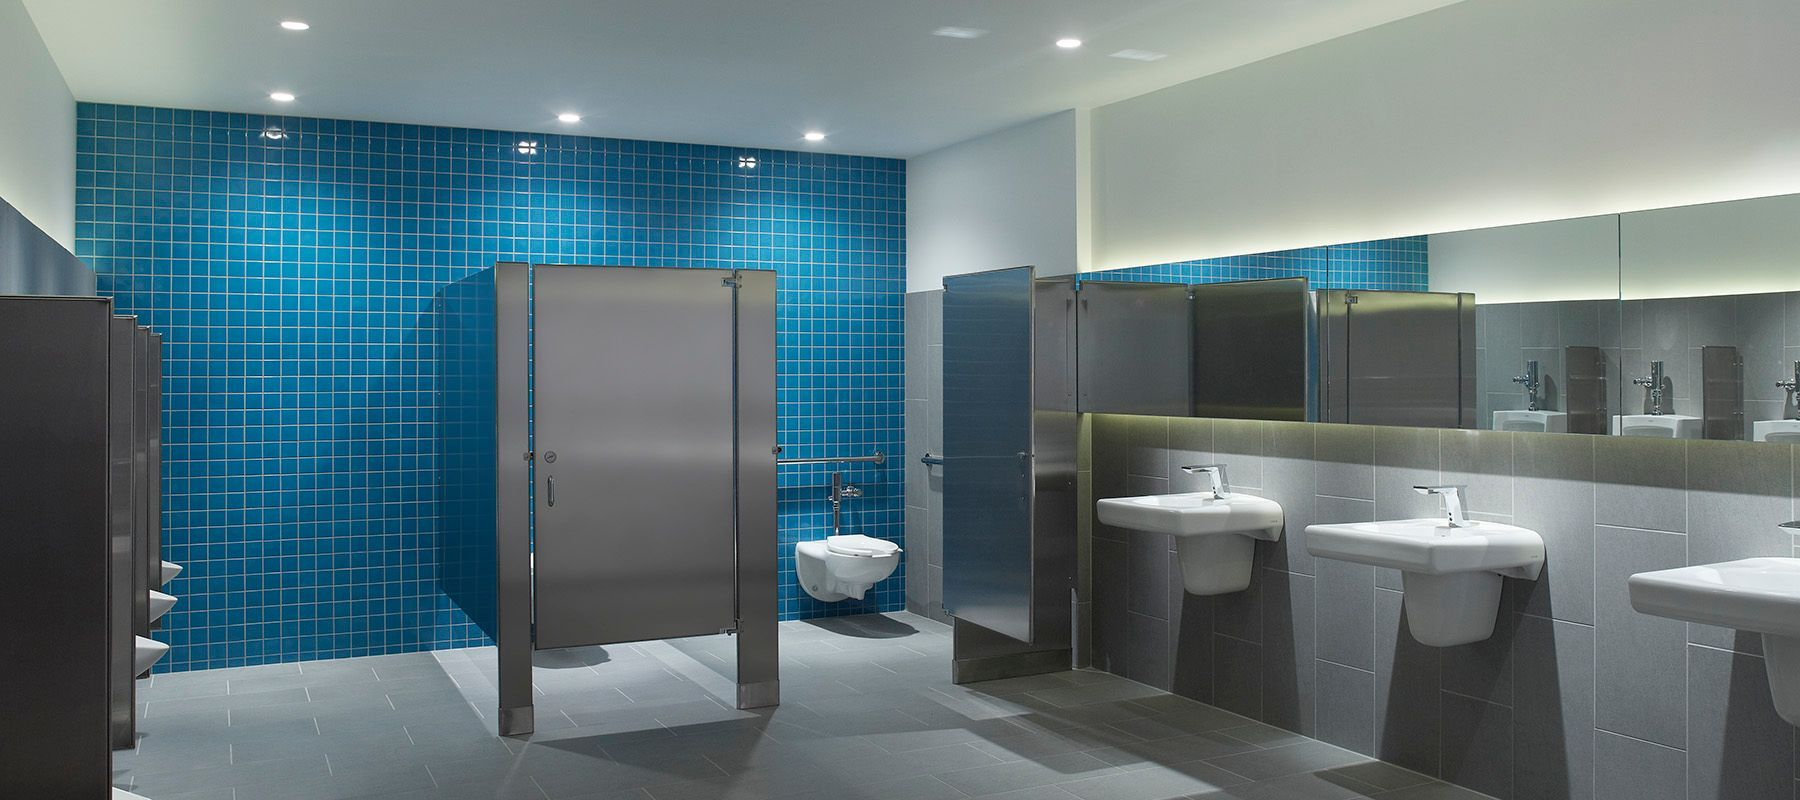 Commercial Bathroom Design Ideas Commercial Bathroom  Bathroom  Kohler  Arc 211 666  Design And